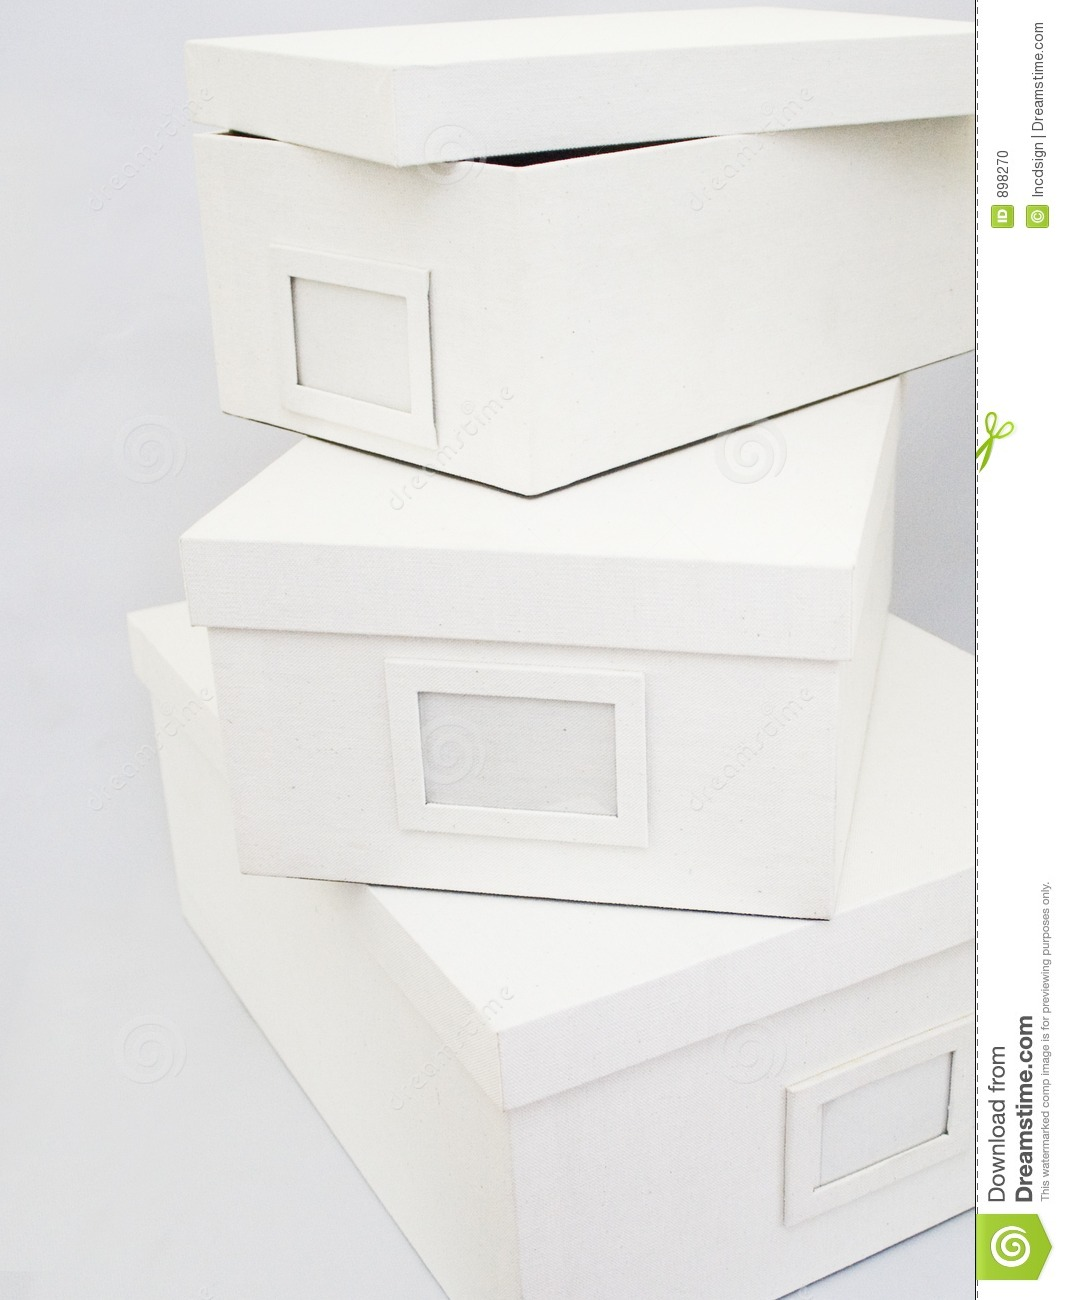 Merveilleux Download Linen Storage Boxes Stock Photo. Image Of White, Filing   898270